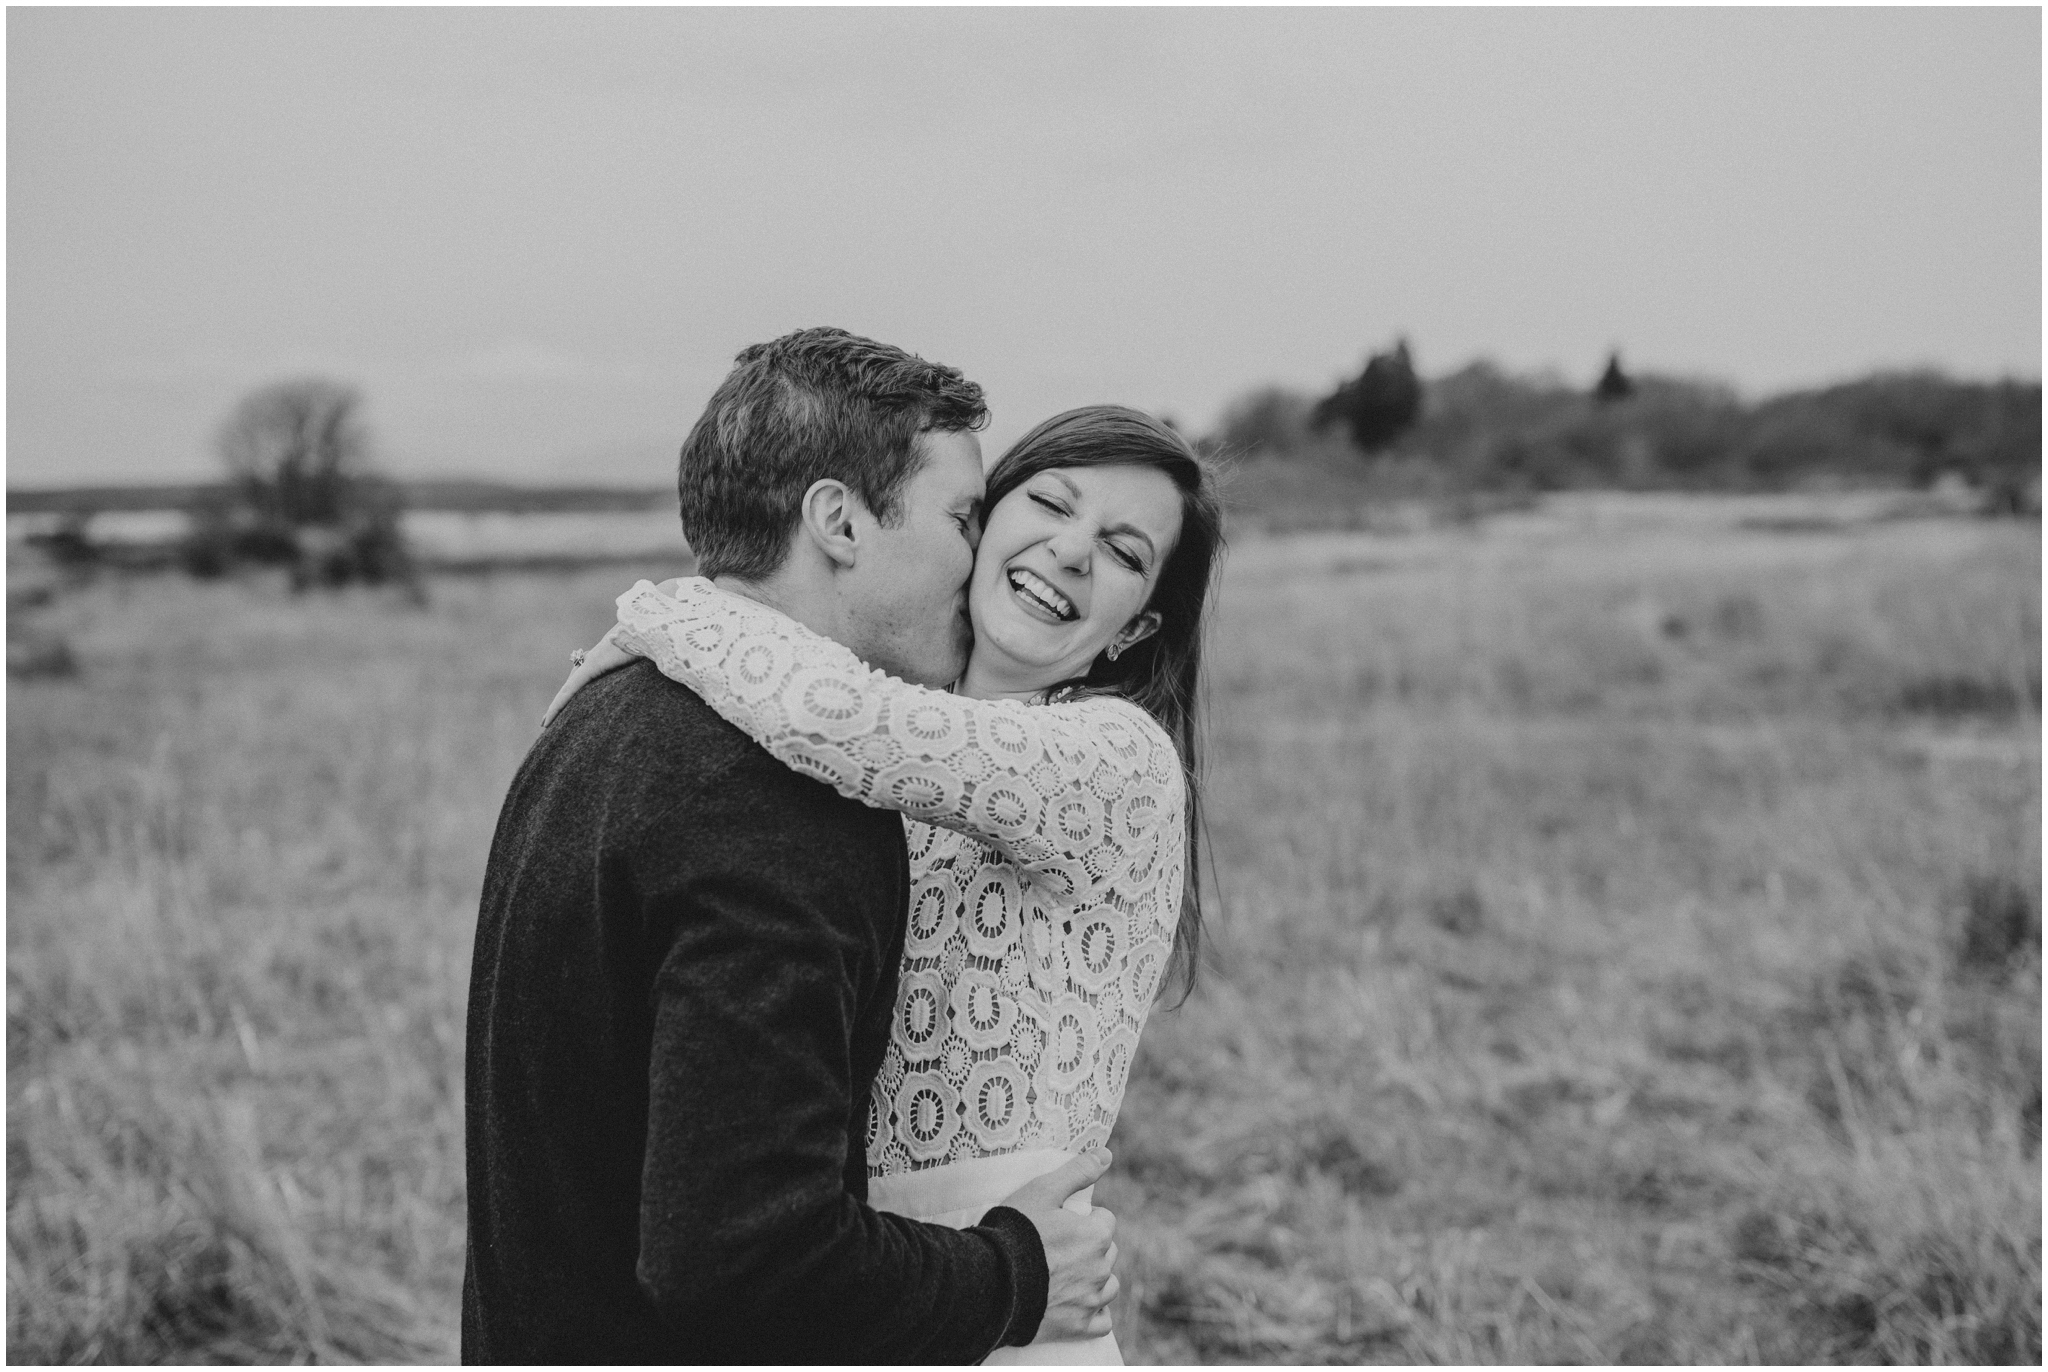 emily-and-matthew-seattle-wedding-photographer-discovery-park-engagement-session-002.jpg